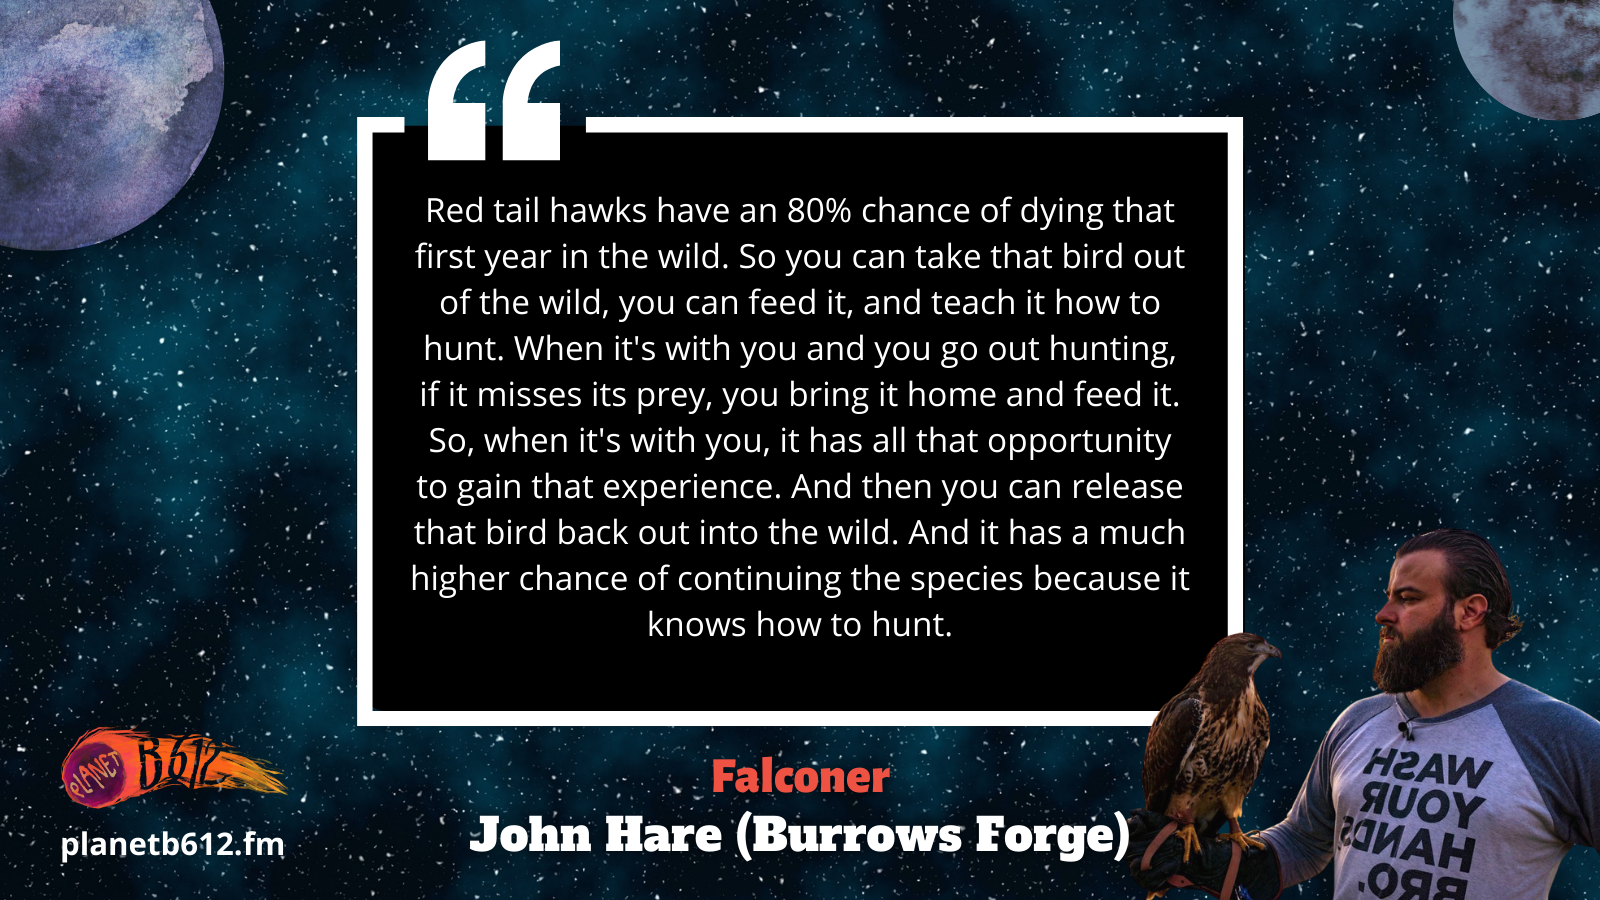 """John Hare from Burrows Forge explain: """"Red tail hawks have an 80% chance of dying that first year in the wild. So you can take that bird out of the wild, you can feed it, and teach it how to hunt. When it's with you and you go out hunting, if it misses its prey, you bring it home and feed it. So, when it's with you, it has all that opportunity to gain that experience. And then you can release that bird back out into the wild. And it has a much higher chance of continuing the species because it knows how to hunt."""""""